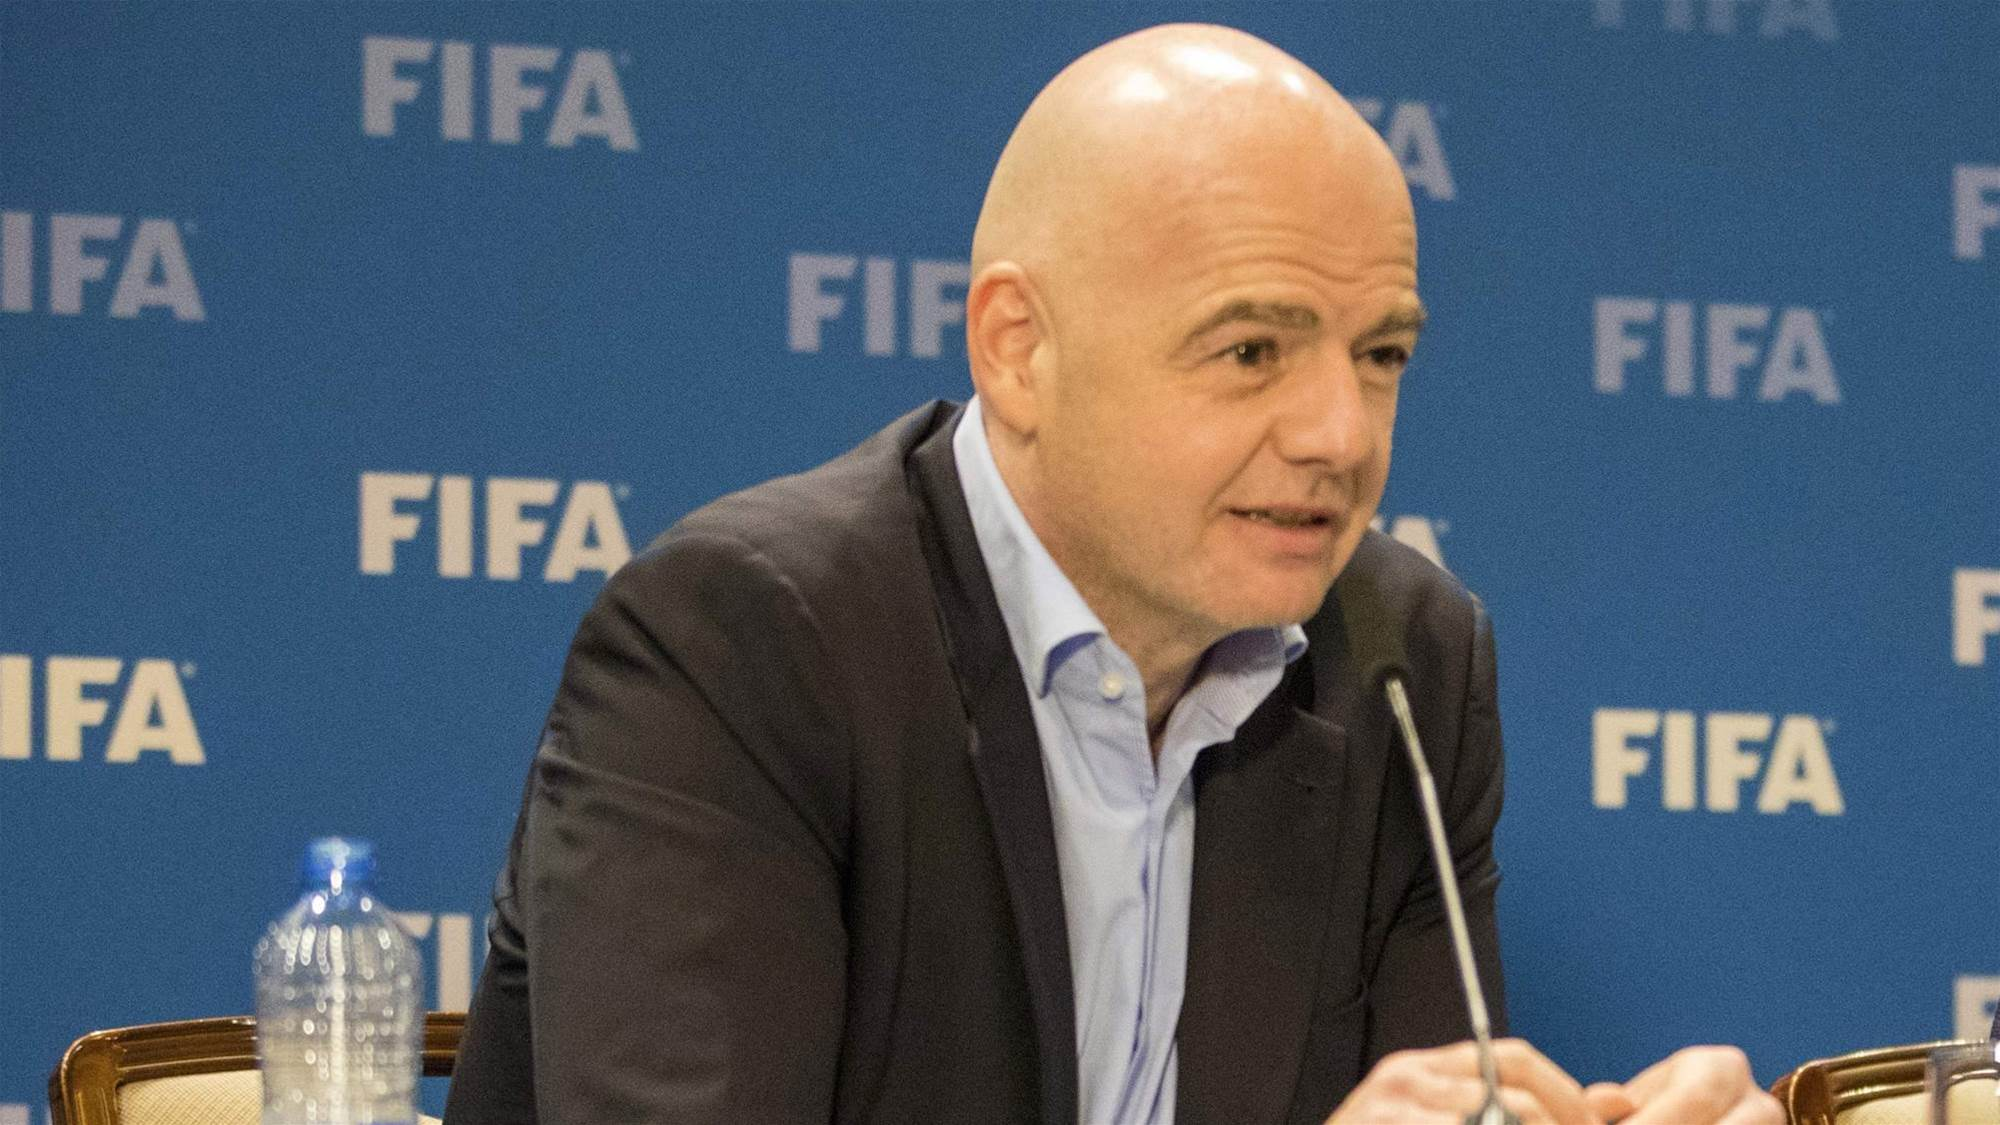 Does FIFA want Australia to have a second tier?